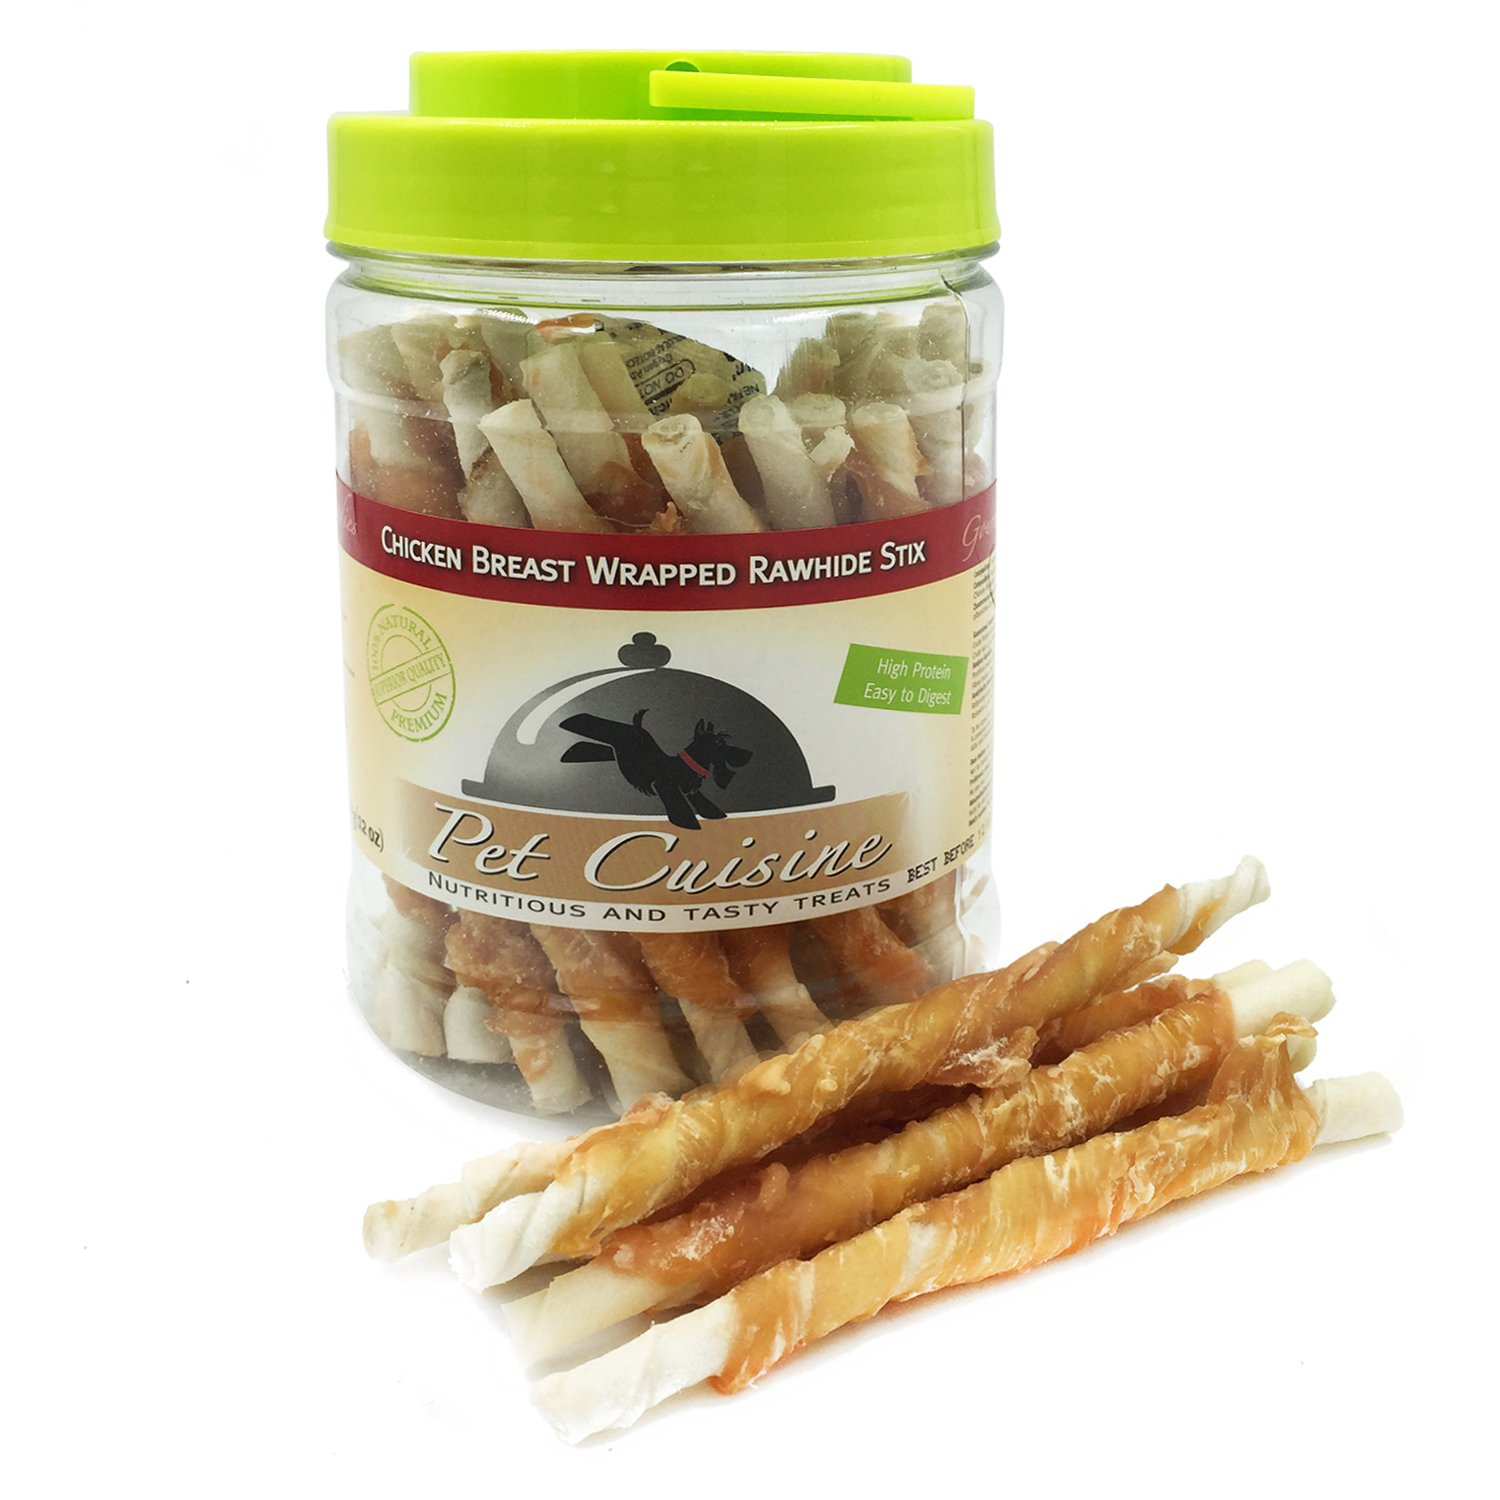 Pet Cuisine Dog Treats Puppy Chews Training Snacks,Chicken Breast Wrapped Rawhide Stix,12 oz